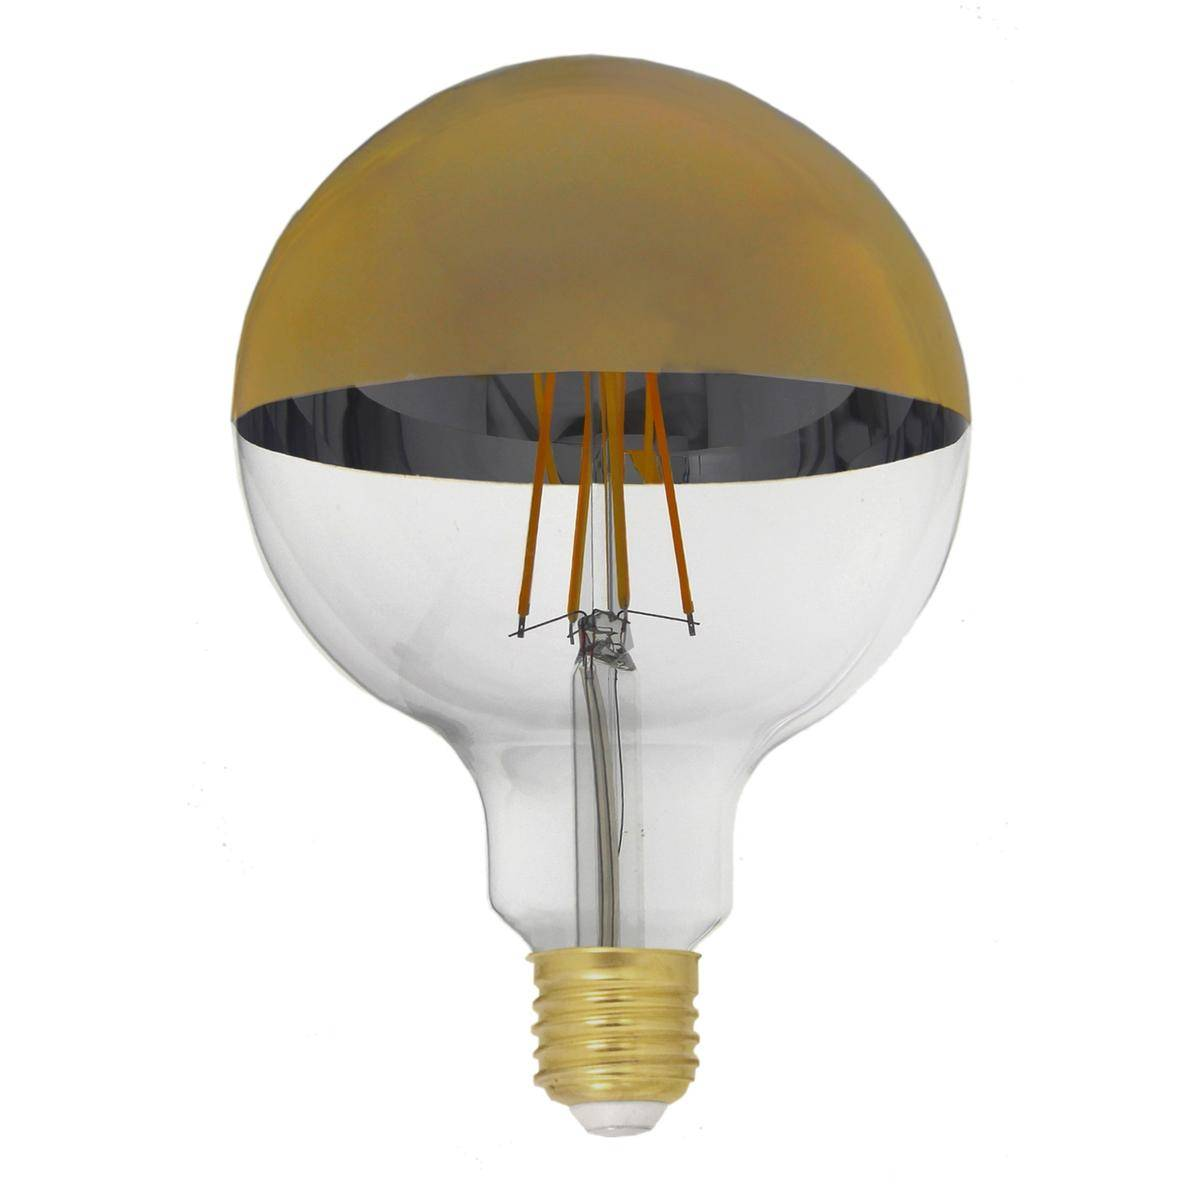 Silamp Ampoule E27 LED Filament Dimmable 8W G125 Globe Reflect Or - couleur eclairage : Blanc Chaud 2300K - 3500K